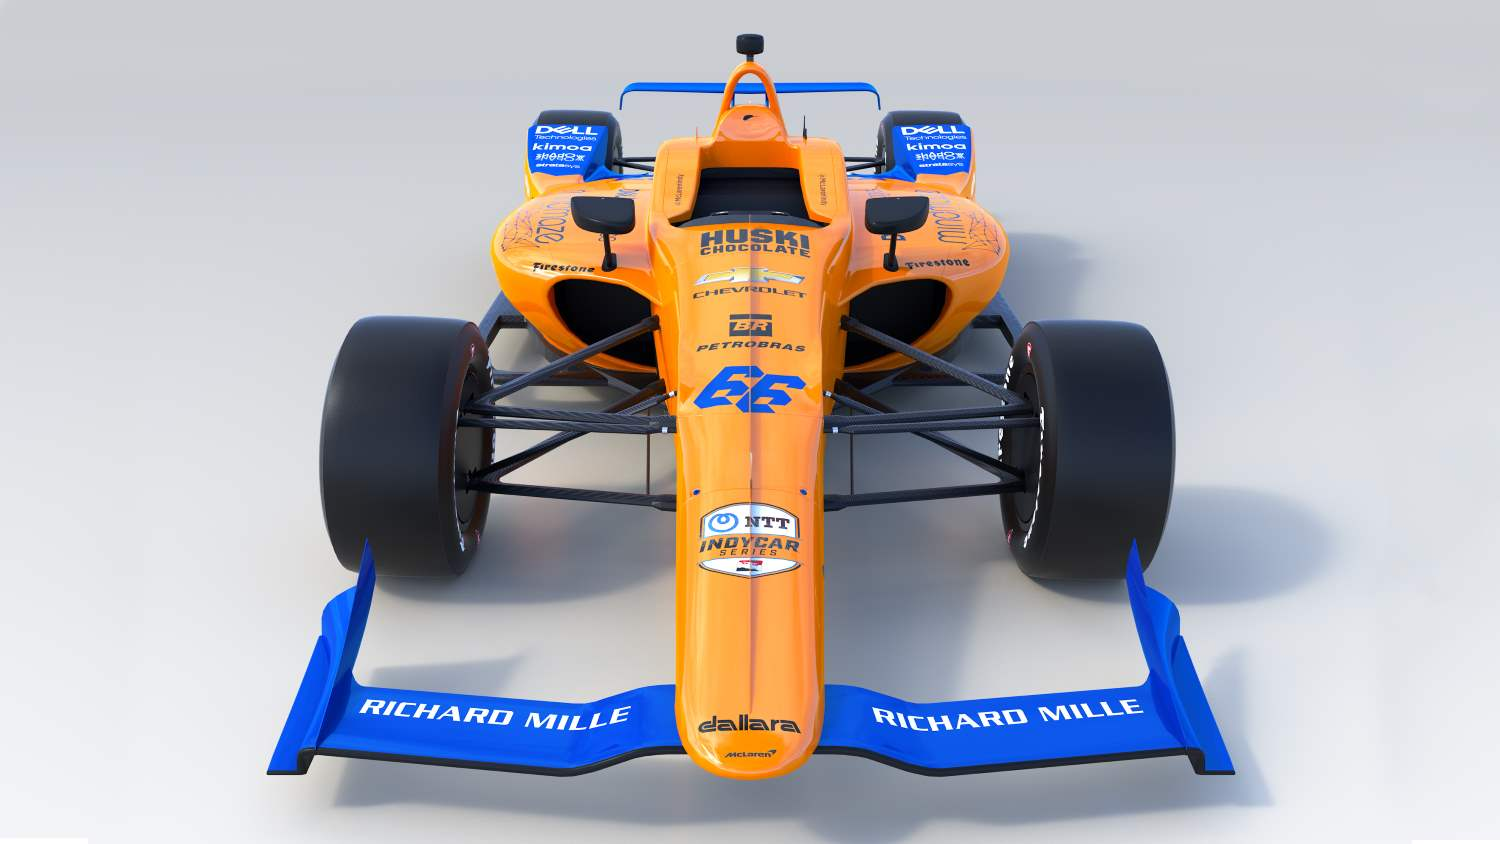 Indy_500_FRONT_3